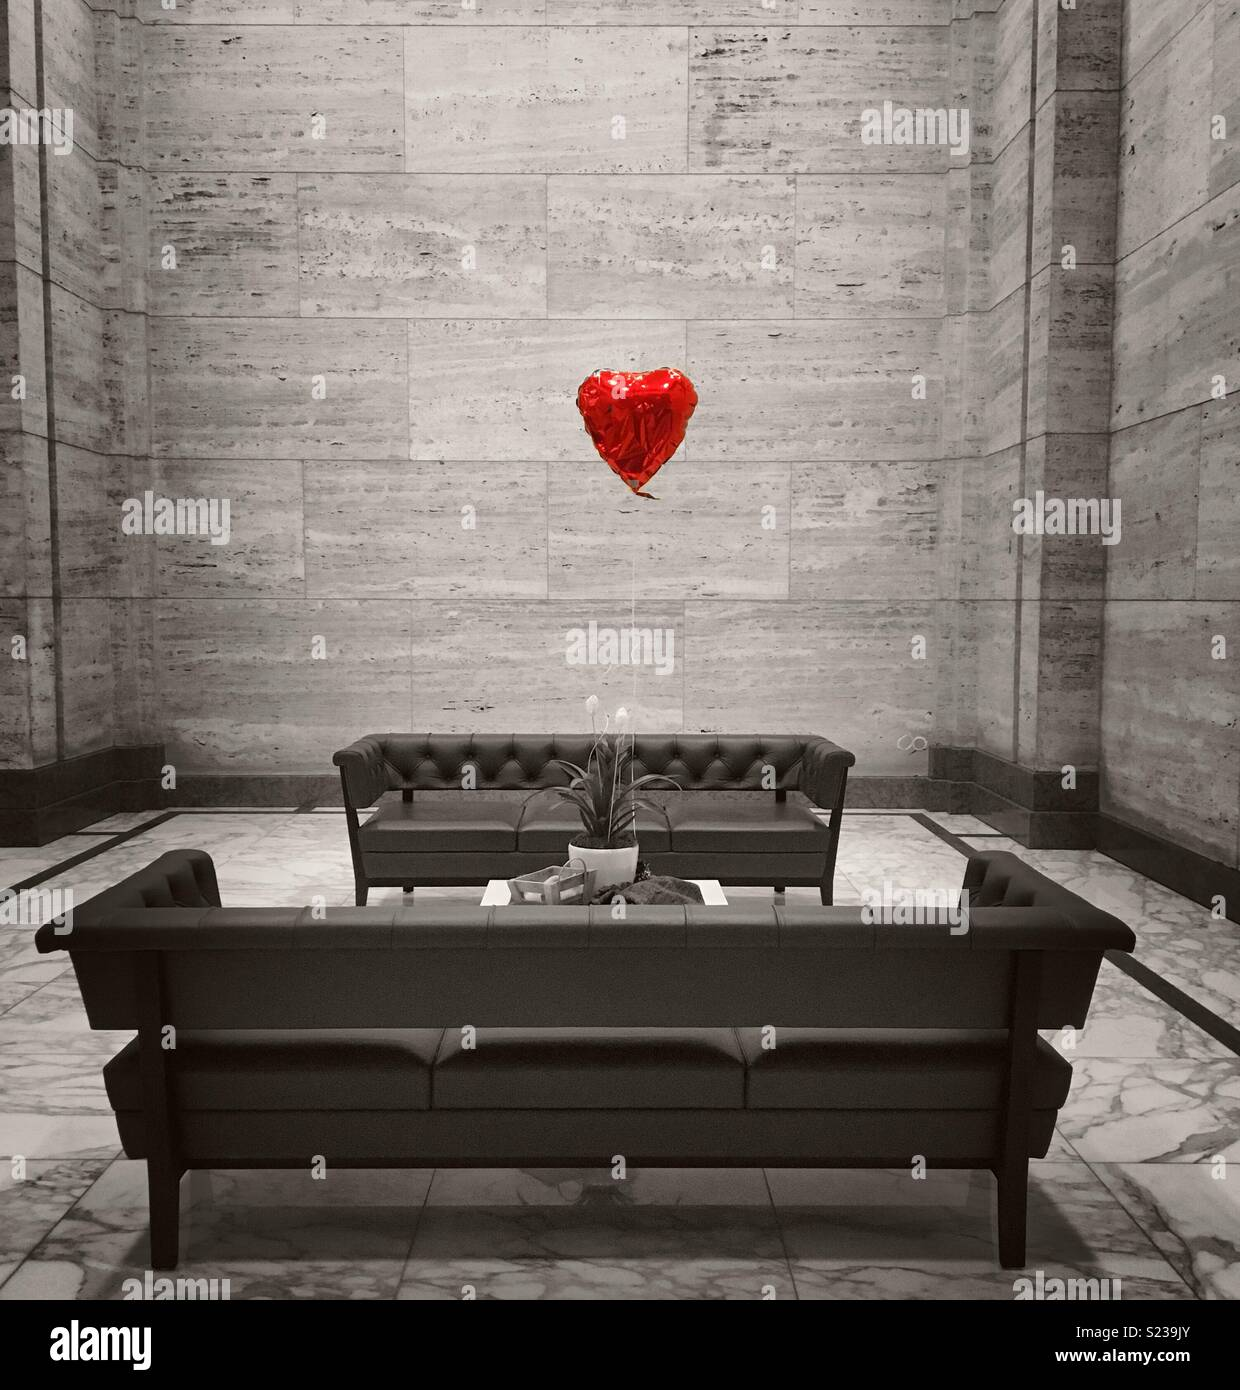 Red Balloon heart with desaturated colours. - Stock Image